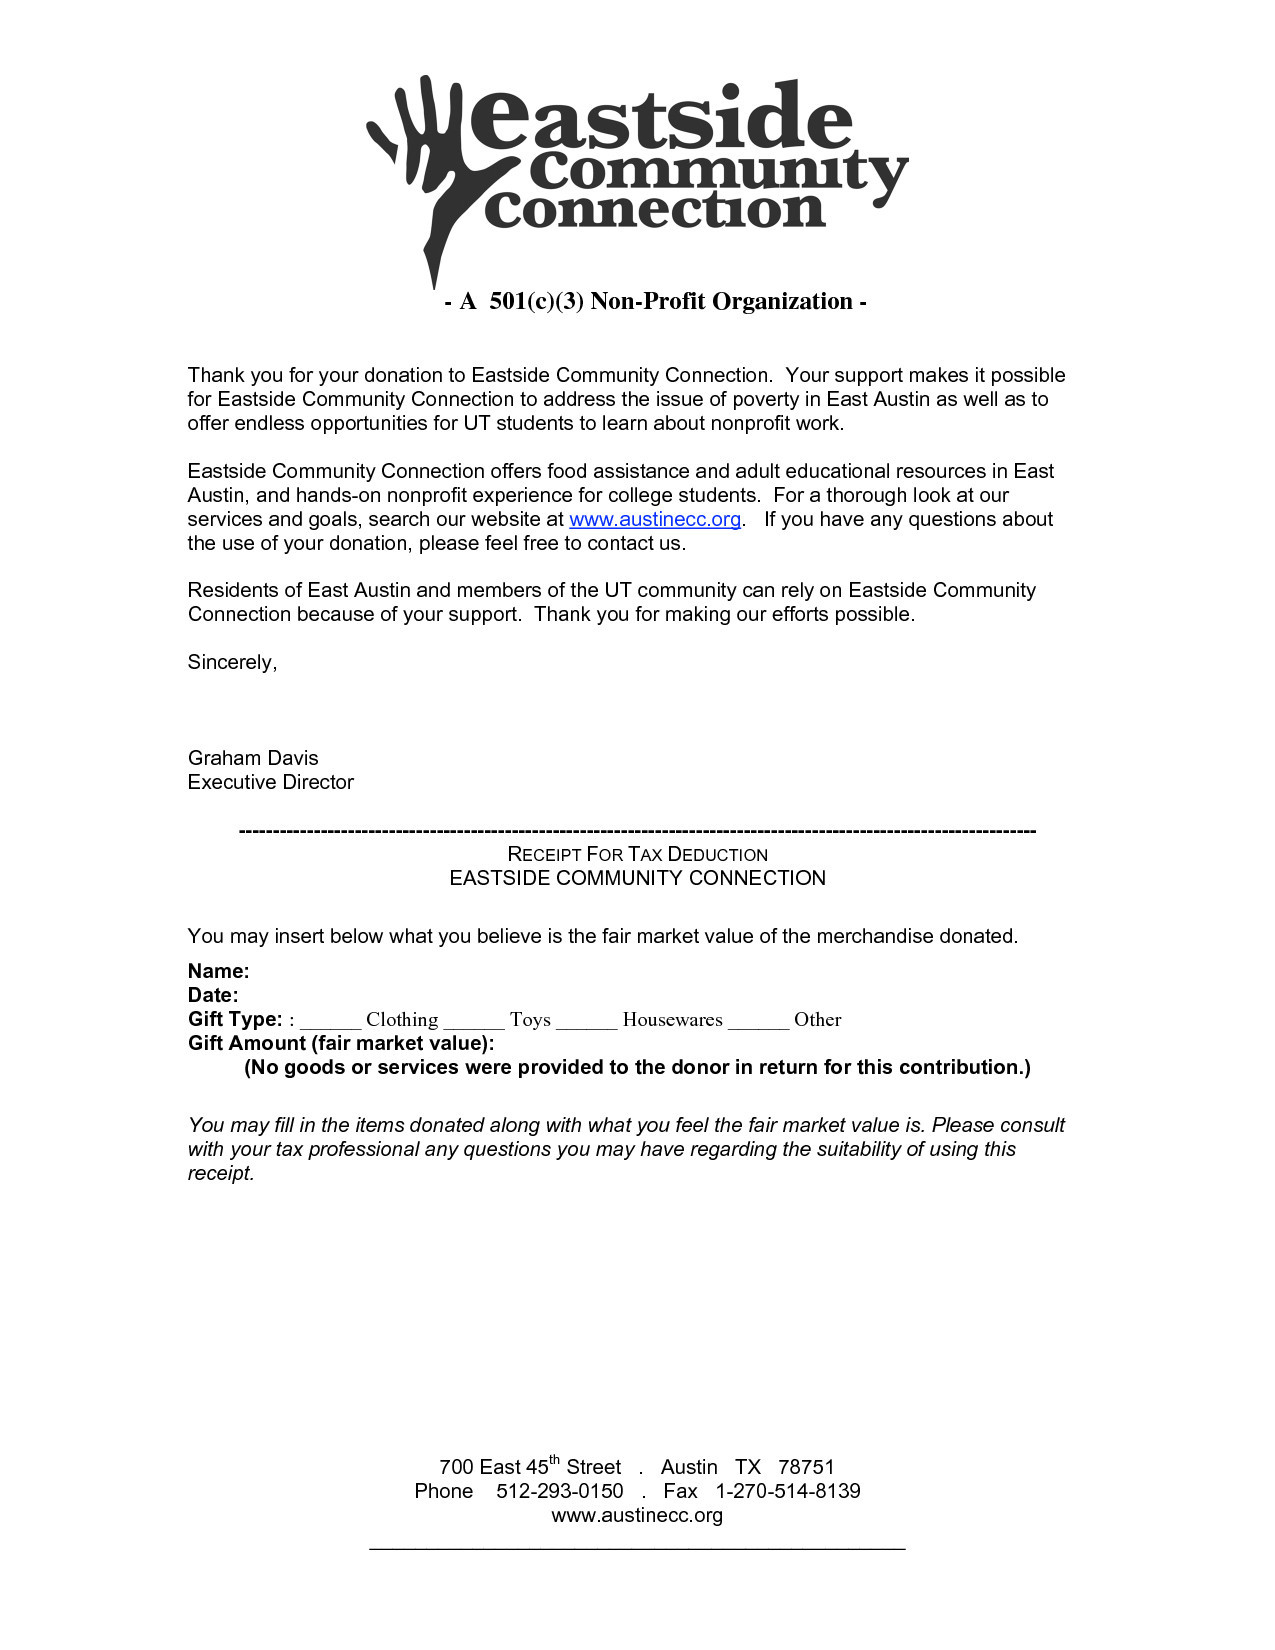 Non Profit Tax Deduction Letter Template - Exceptional Tax Donation Letter Template